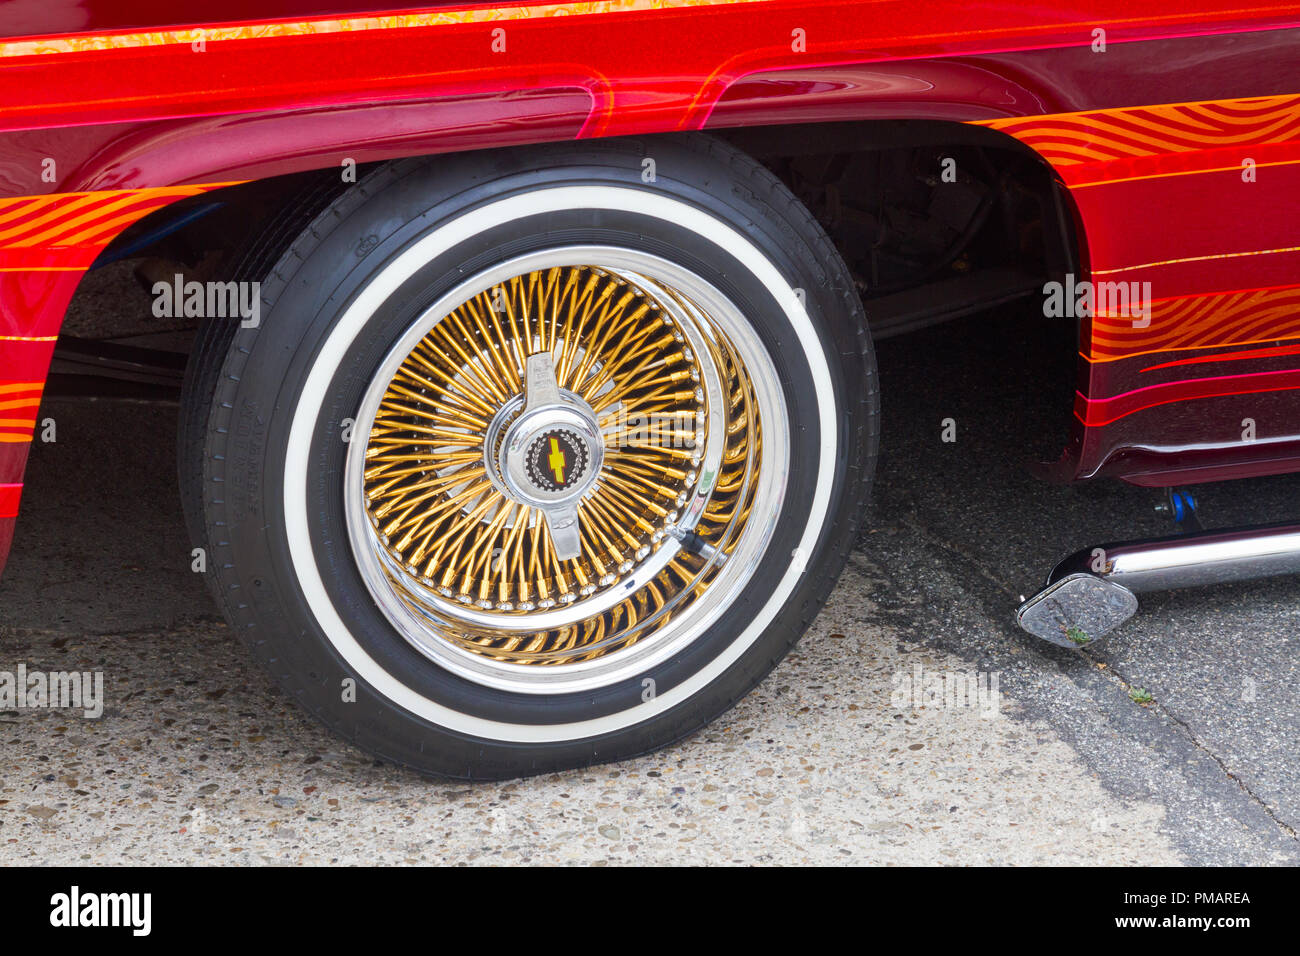 Closeup of wheel on Chevy hot rod. - Stock Image